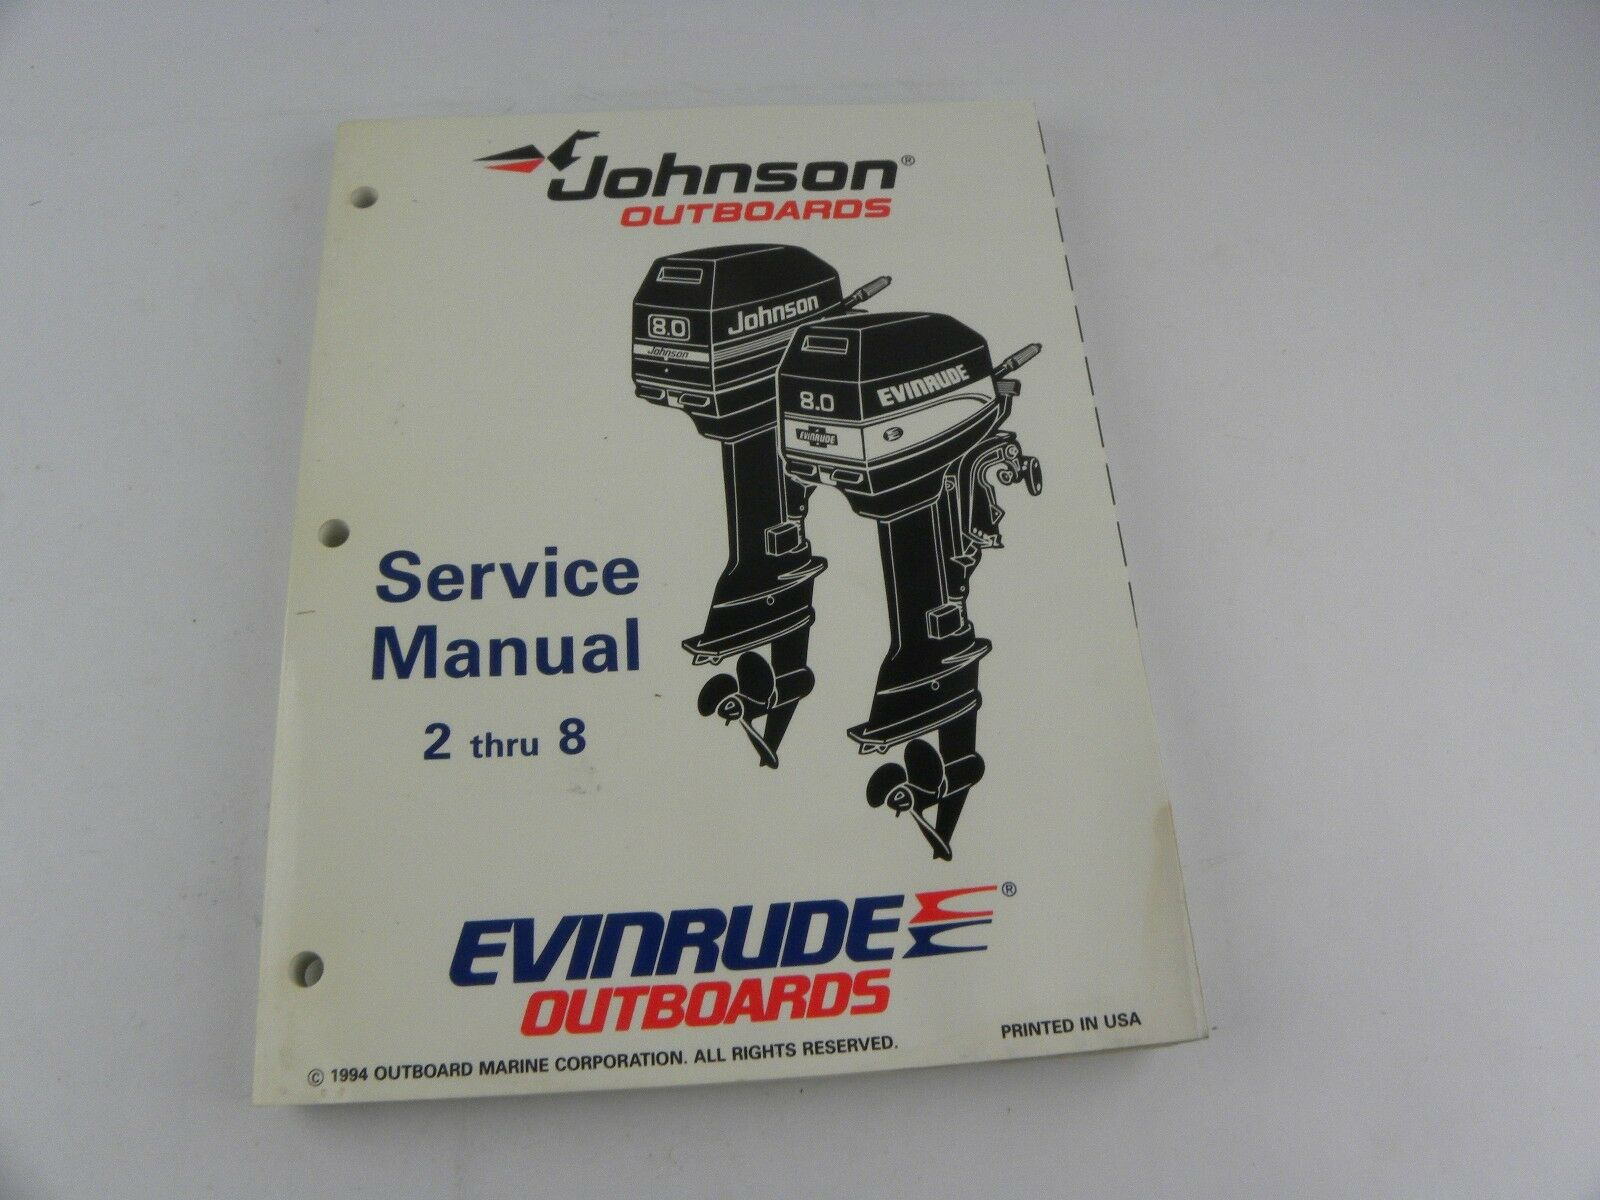 Johnson Outboards EO Service Manual 2 thru 8. Part 503145.